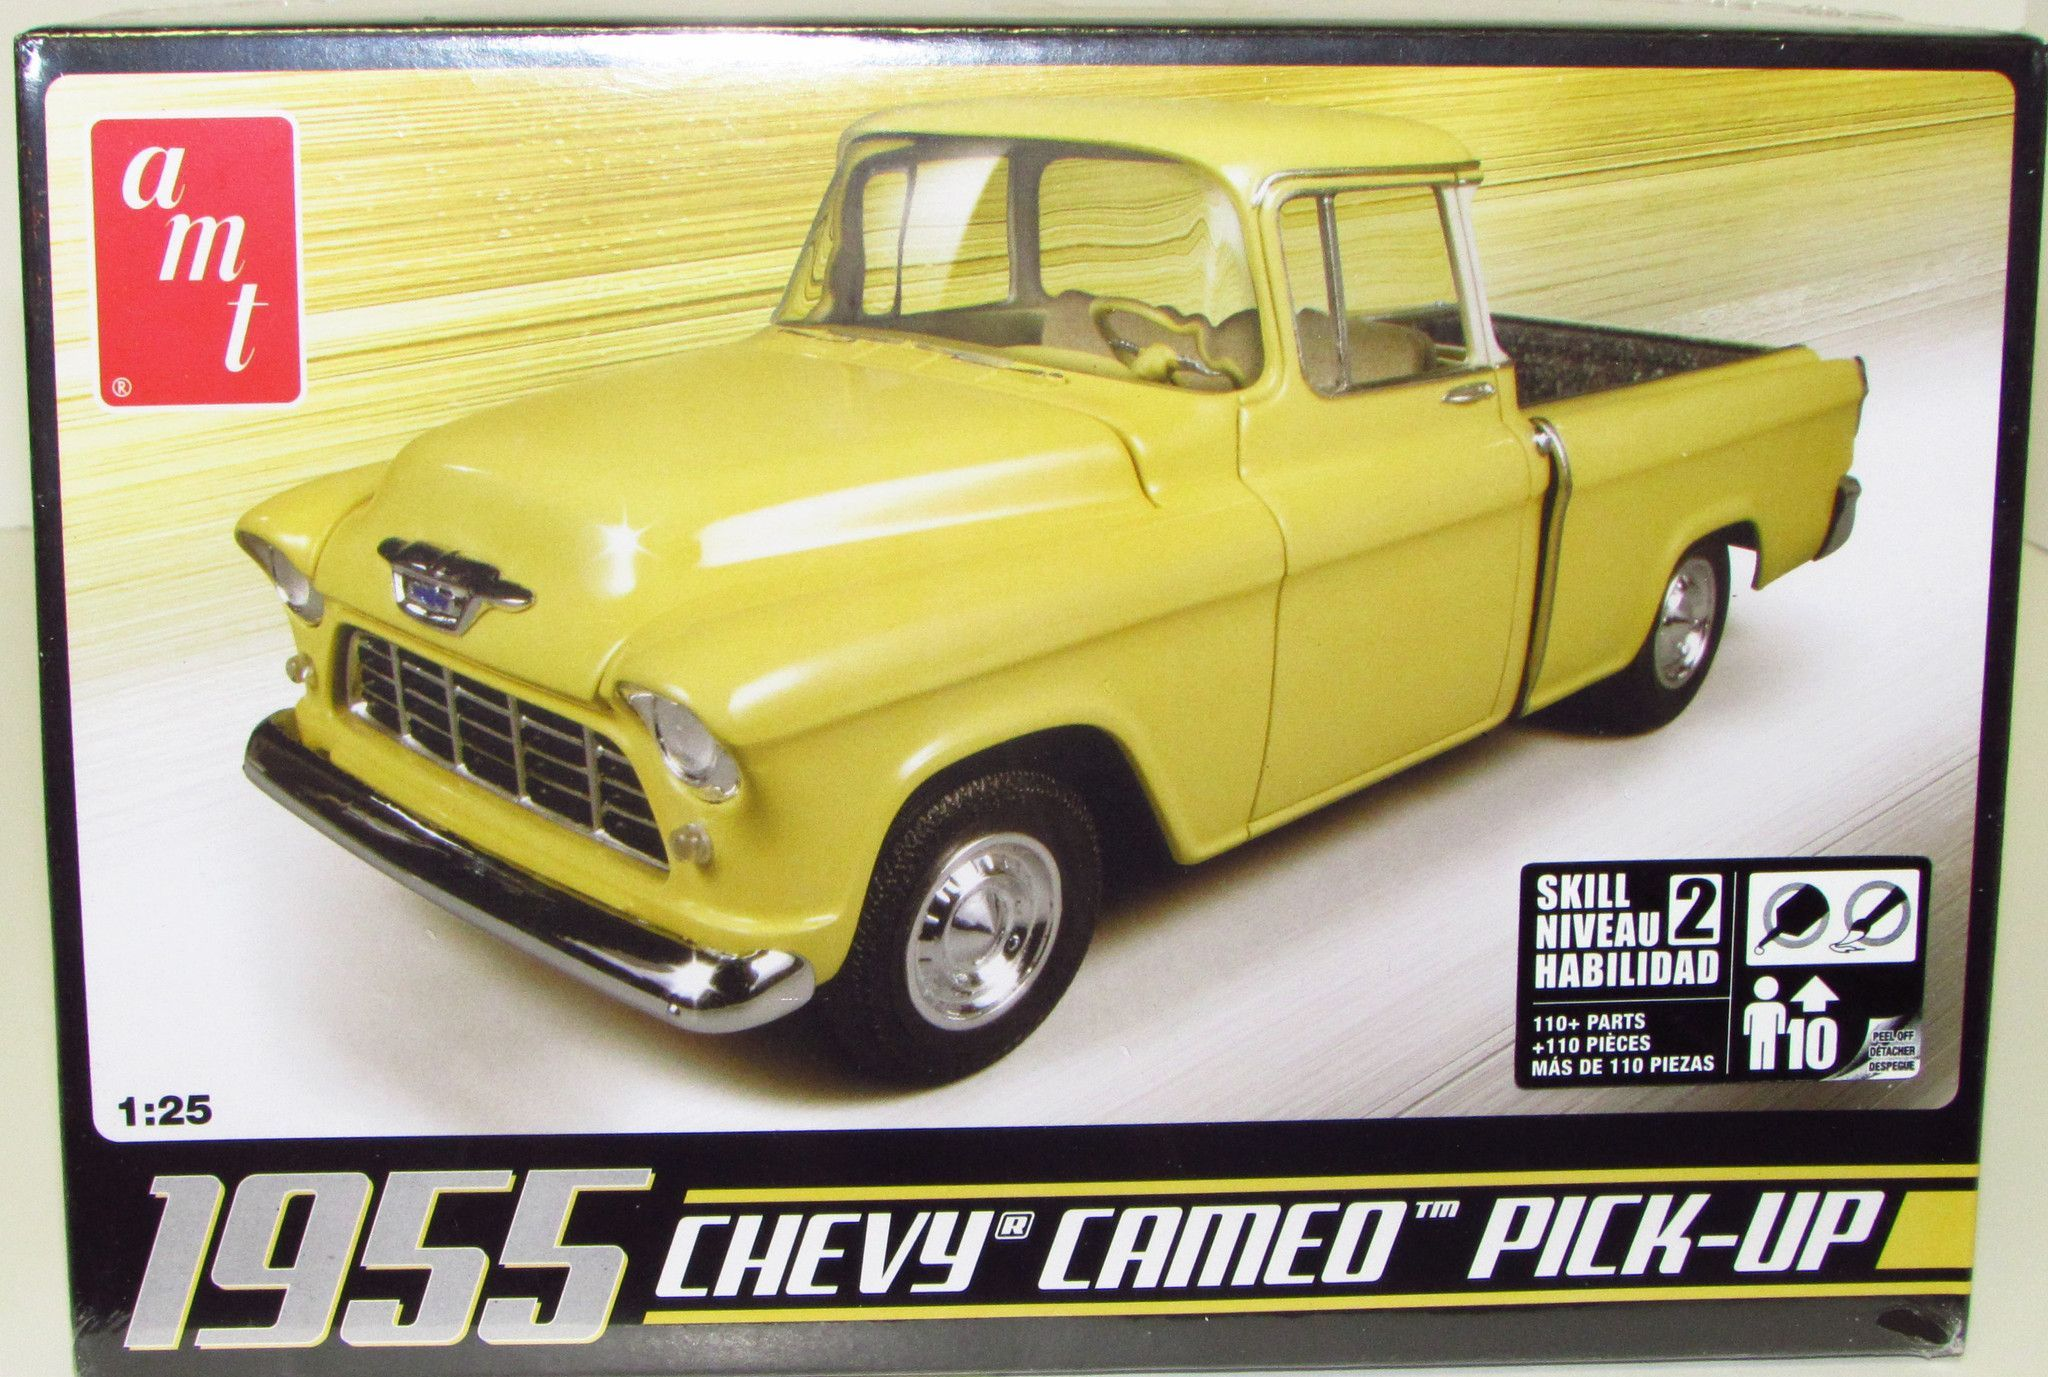 1955 Chevy Cameo Pickup Truck Amt 633 1 25 Scale New Model Kit Ford F100 Volare Suspension